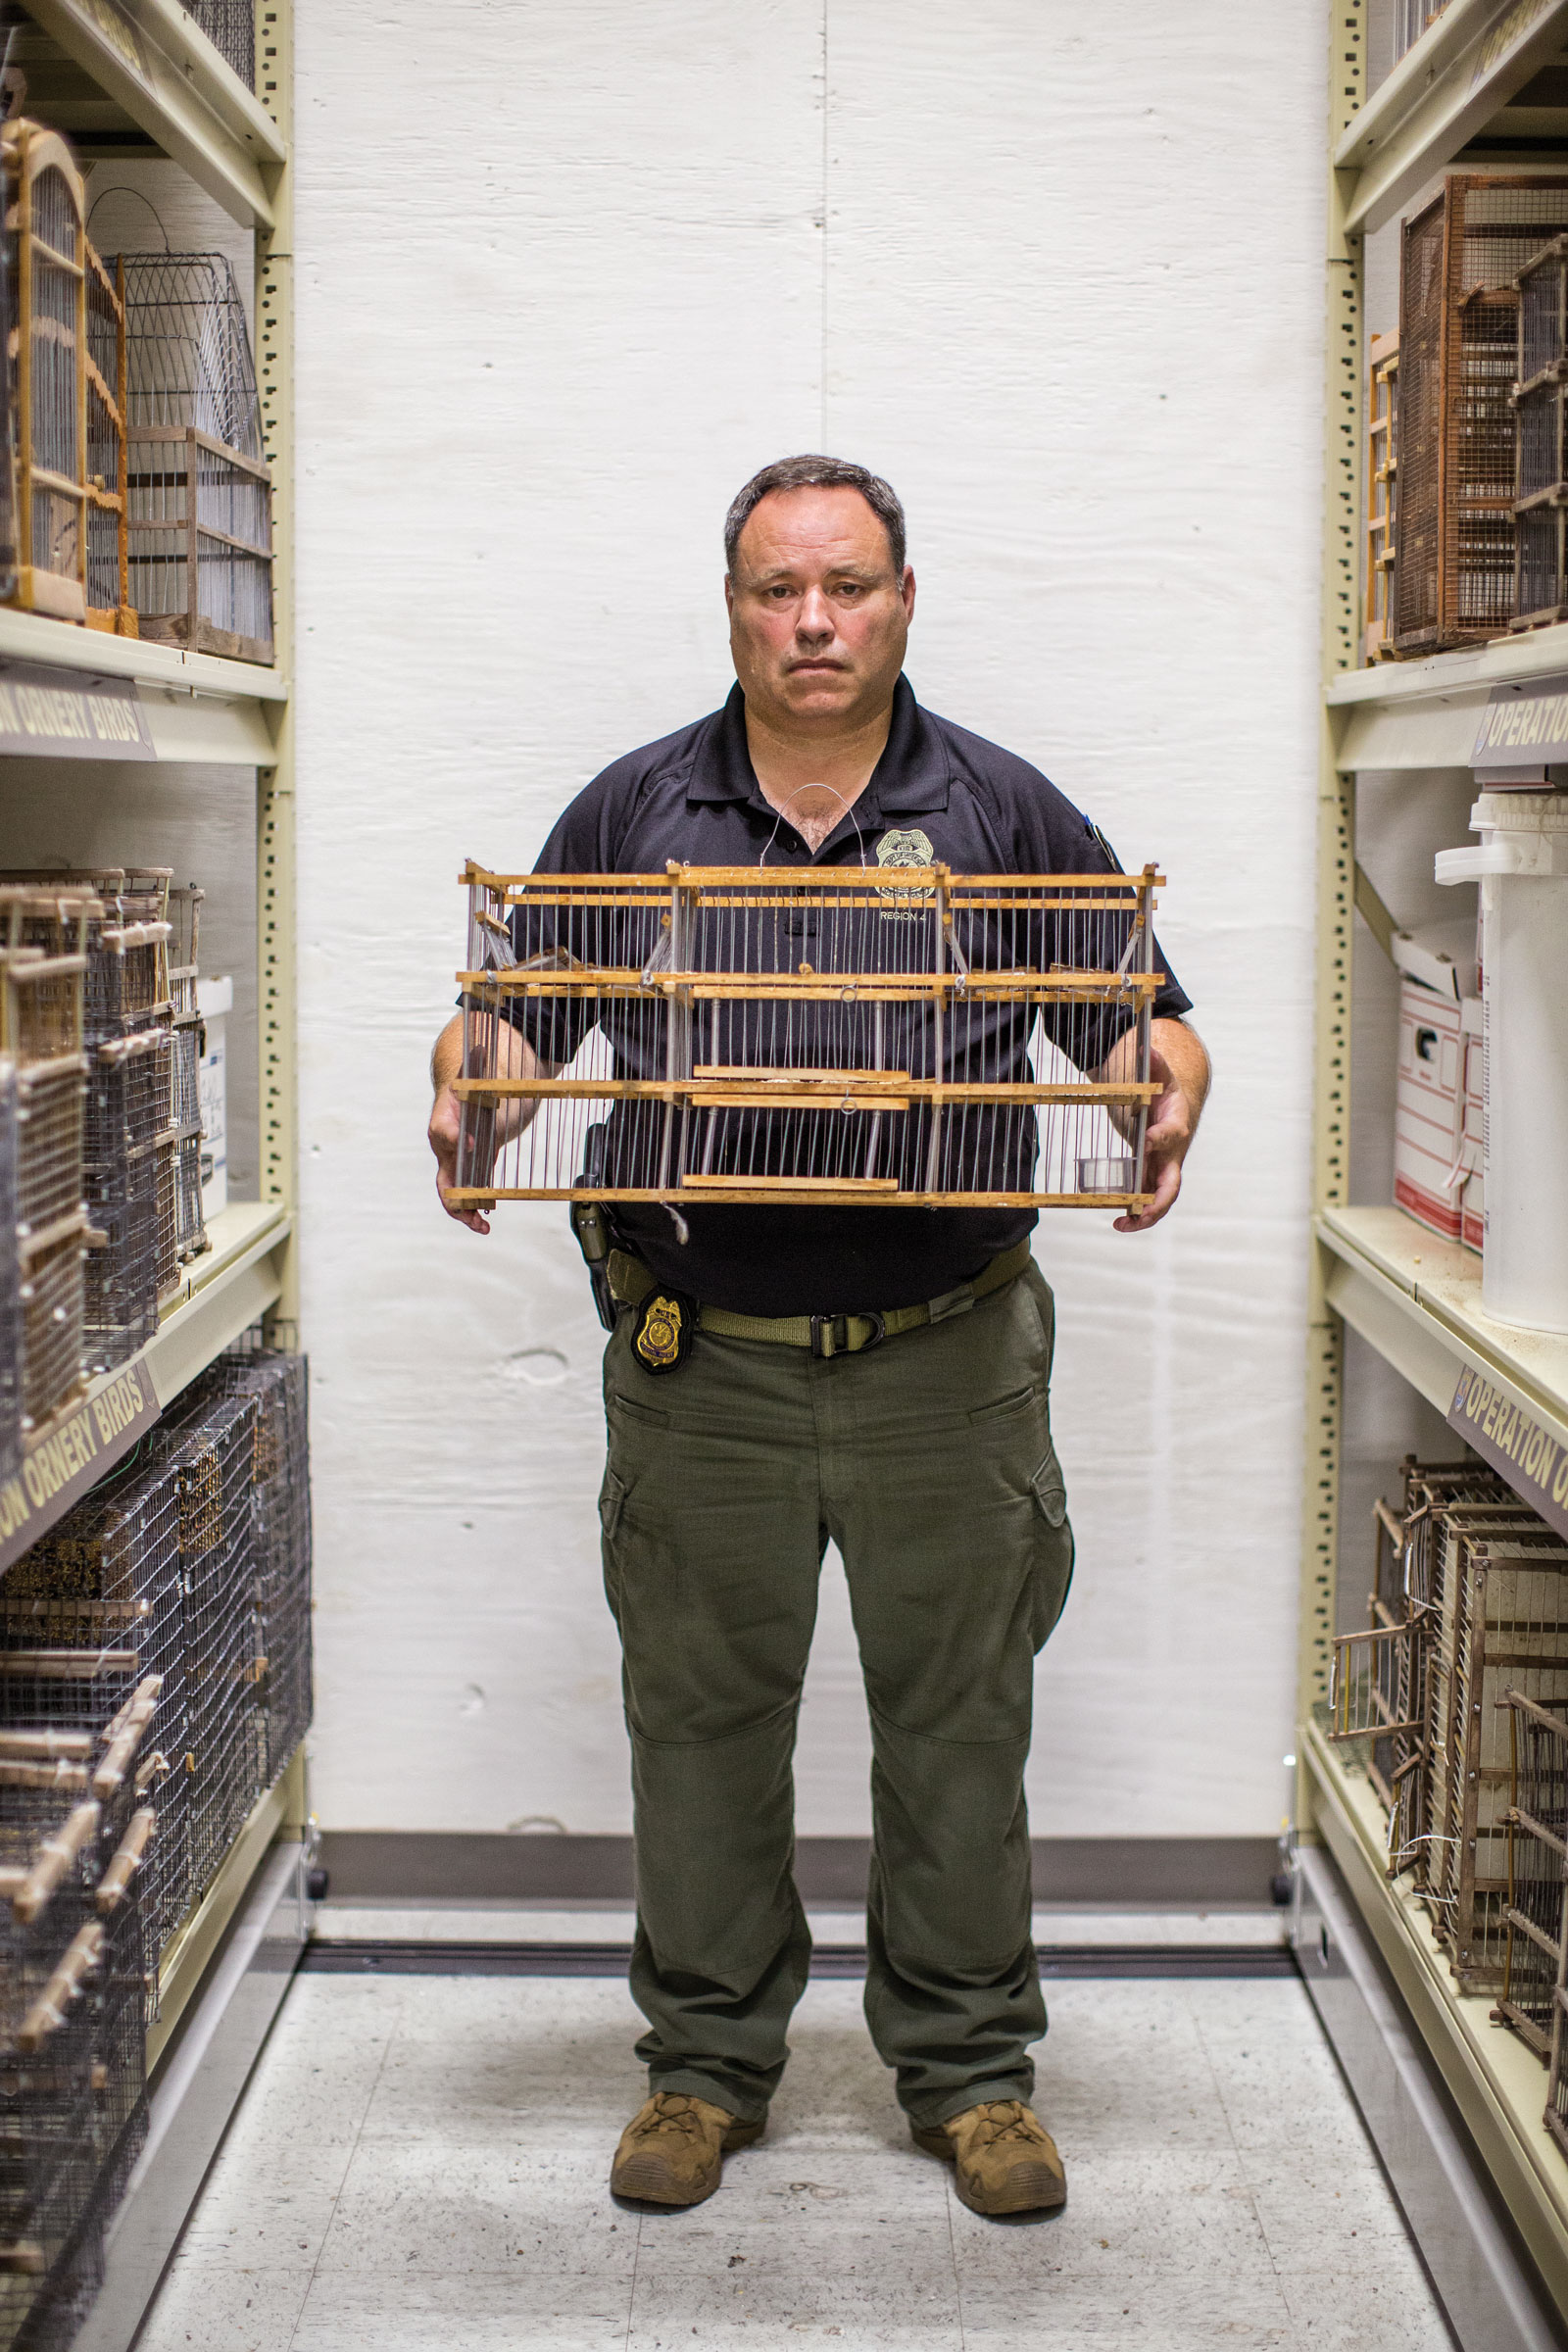 U.S. Fish and Wildlife Service agent David Pharo holds the type of trap often used by traffickers. Karine Aigner